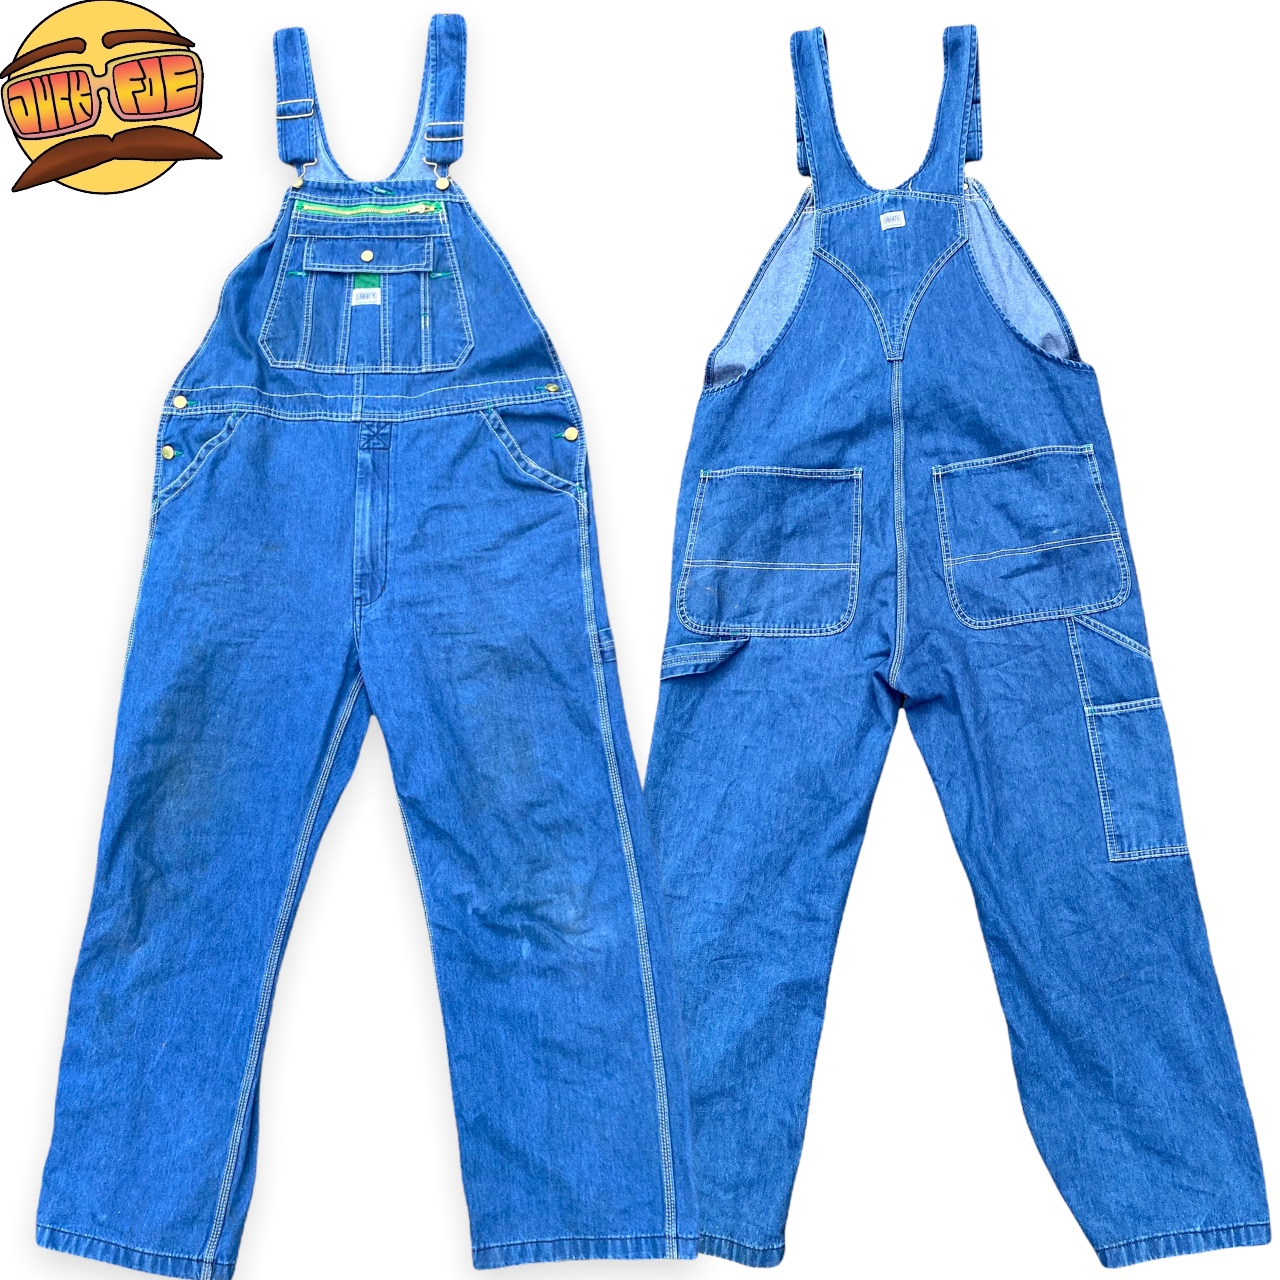 Product Image 1 - Vintage Denim Overalls made by